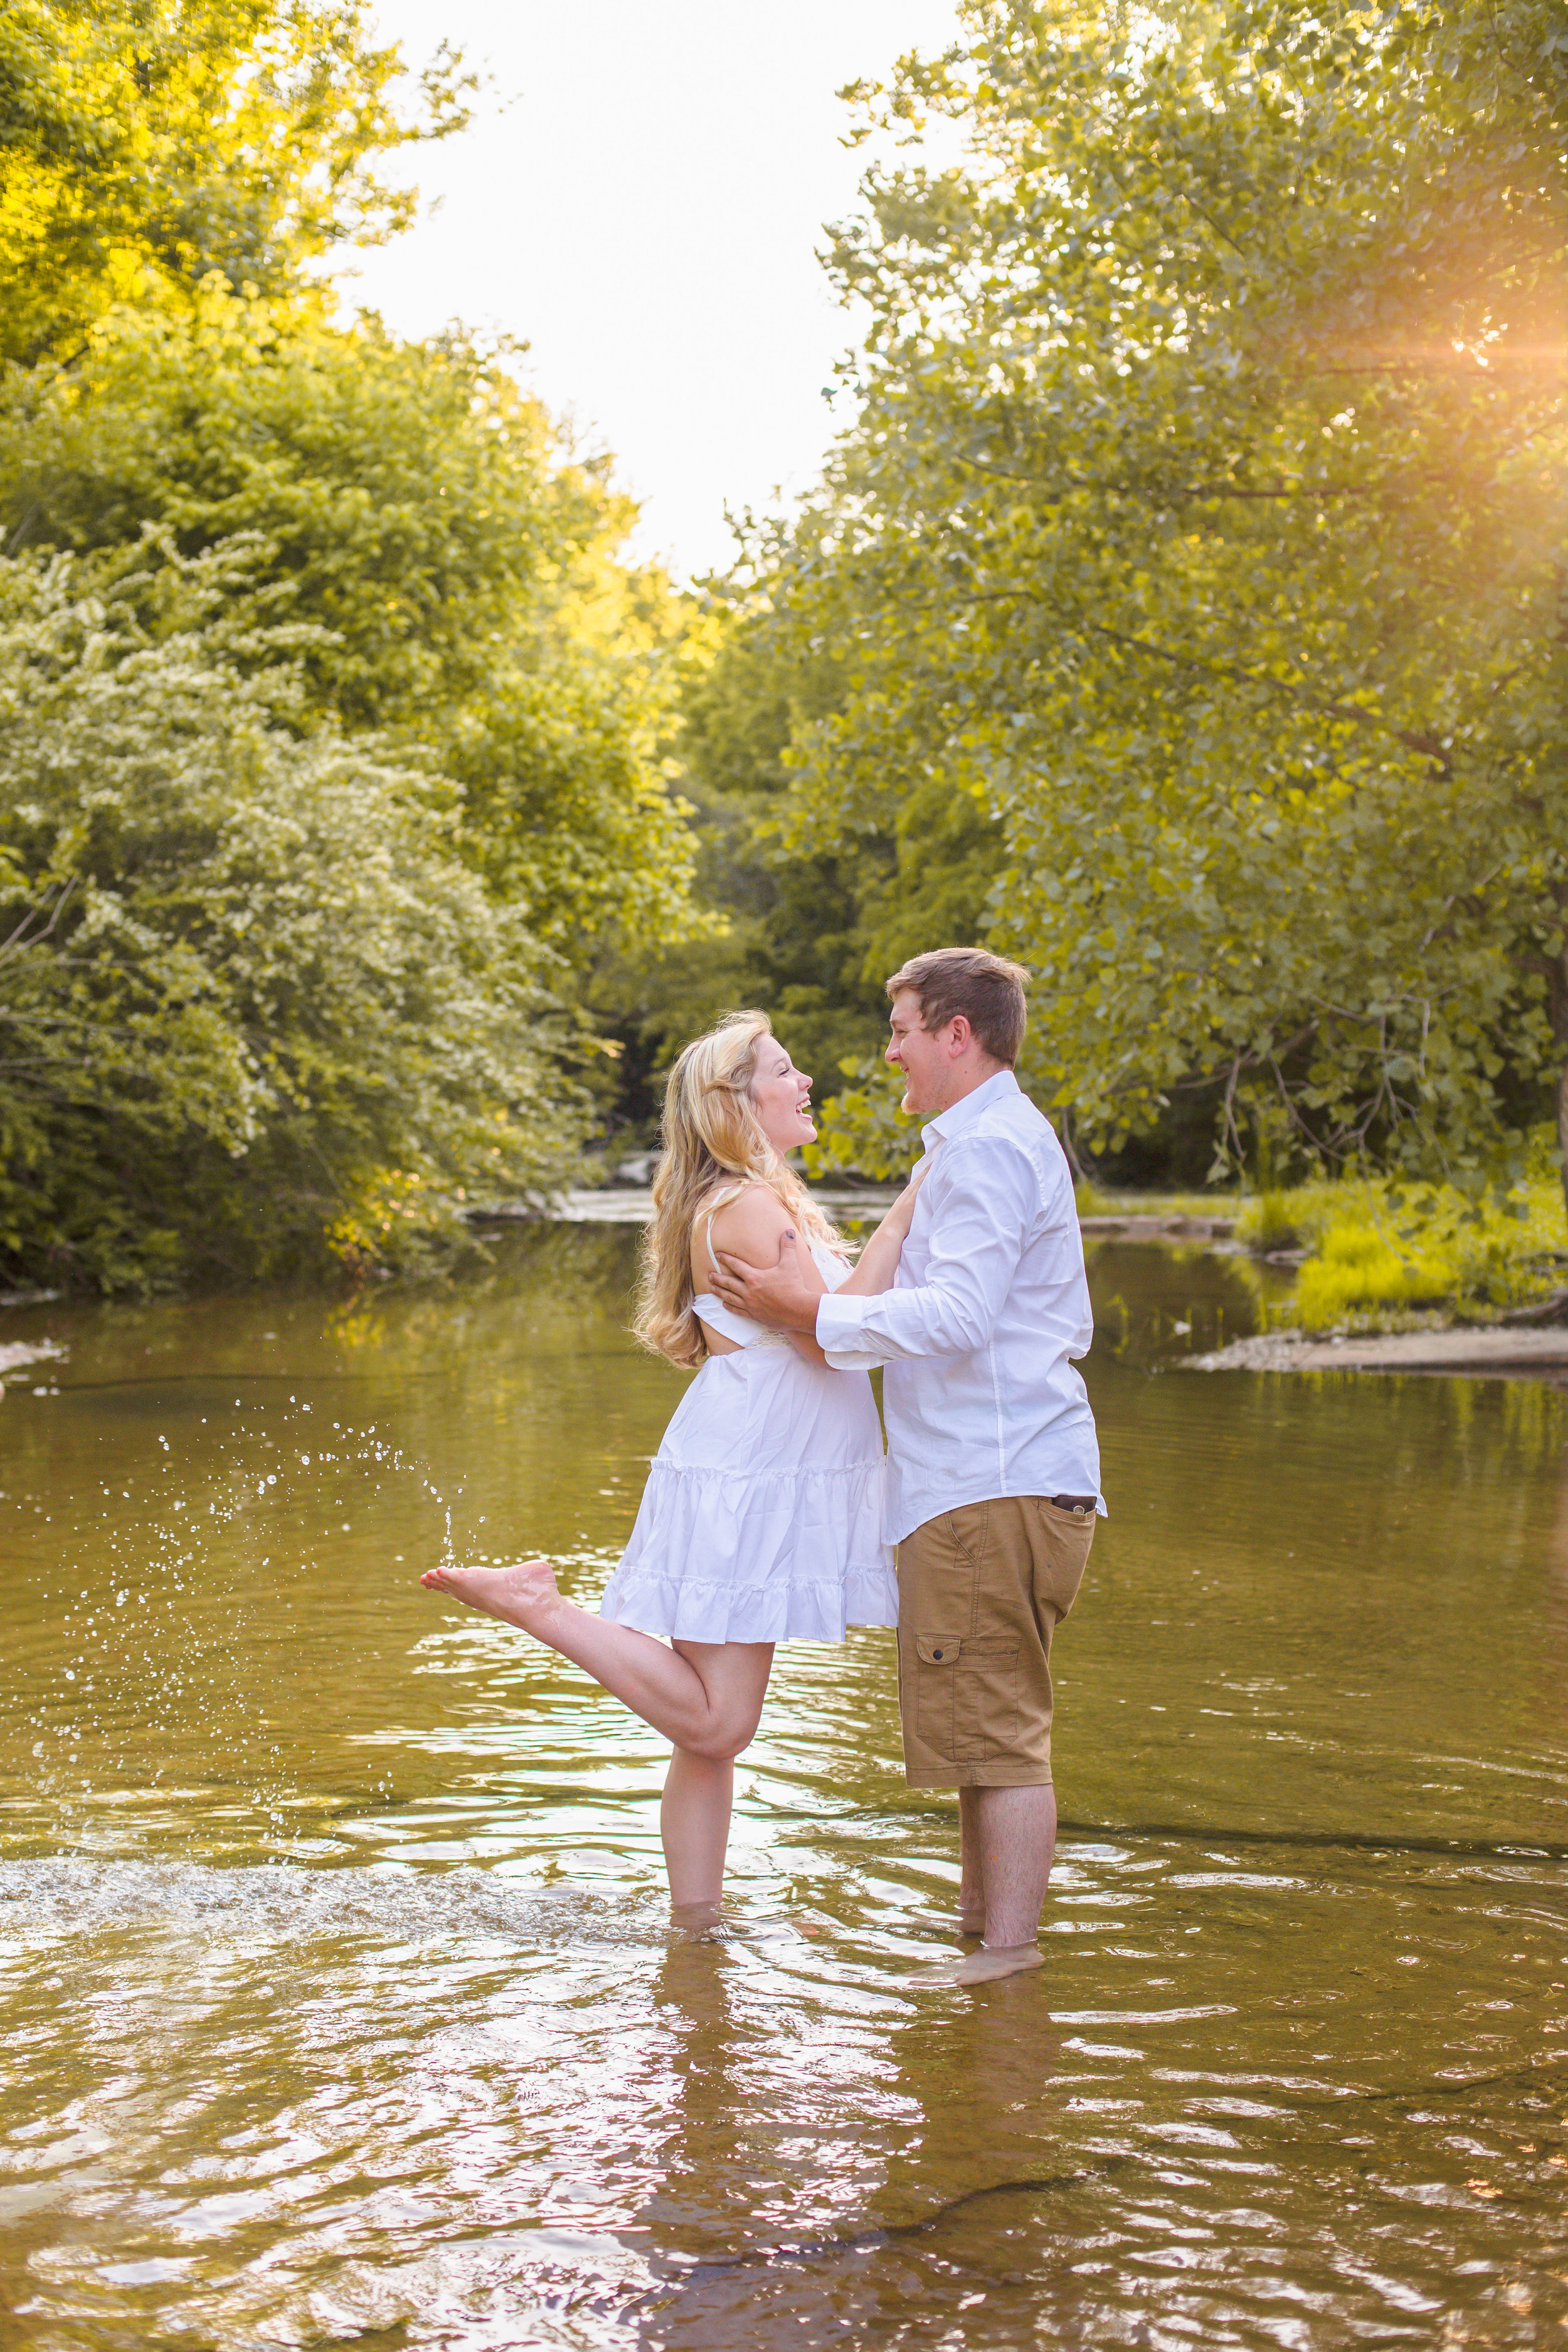 Savanna & Terry Maternity Session - Nashville Newborn Photographer - Chelsea Meadows Photography (30).jpg